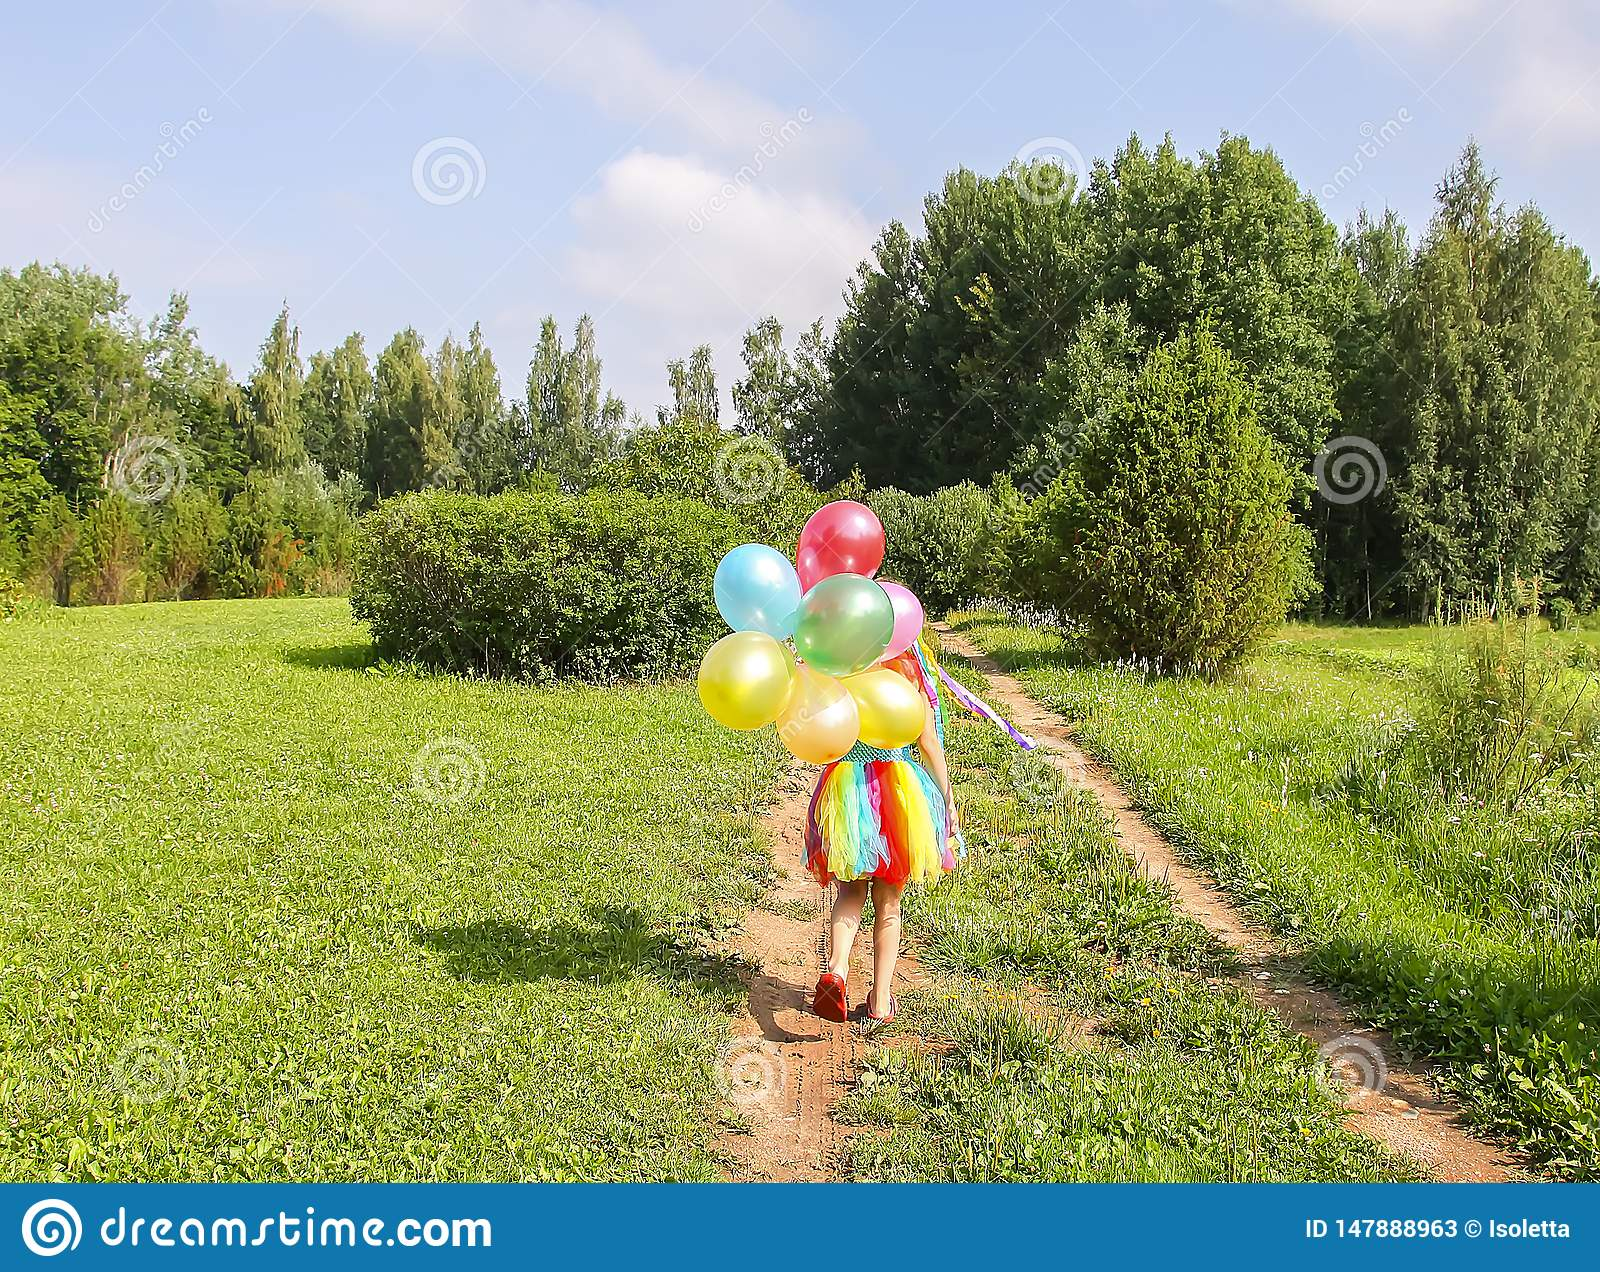 Adorable little girl on green grass with colorful bright balloons